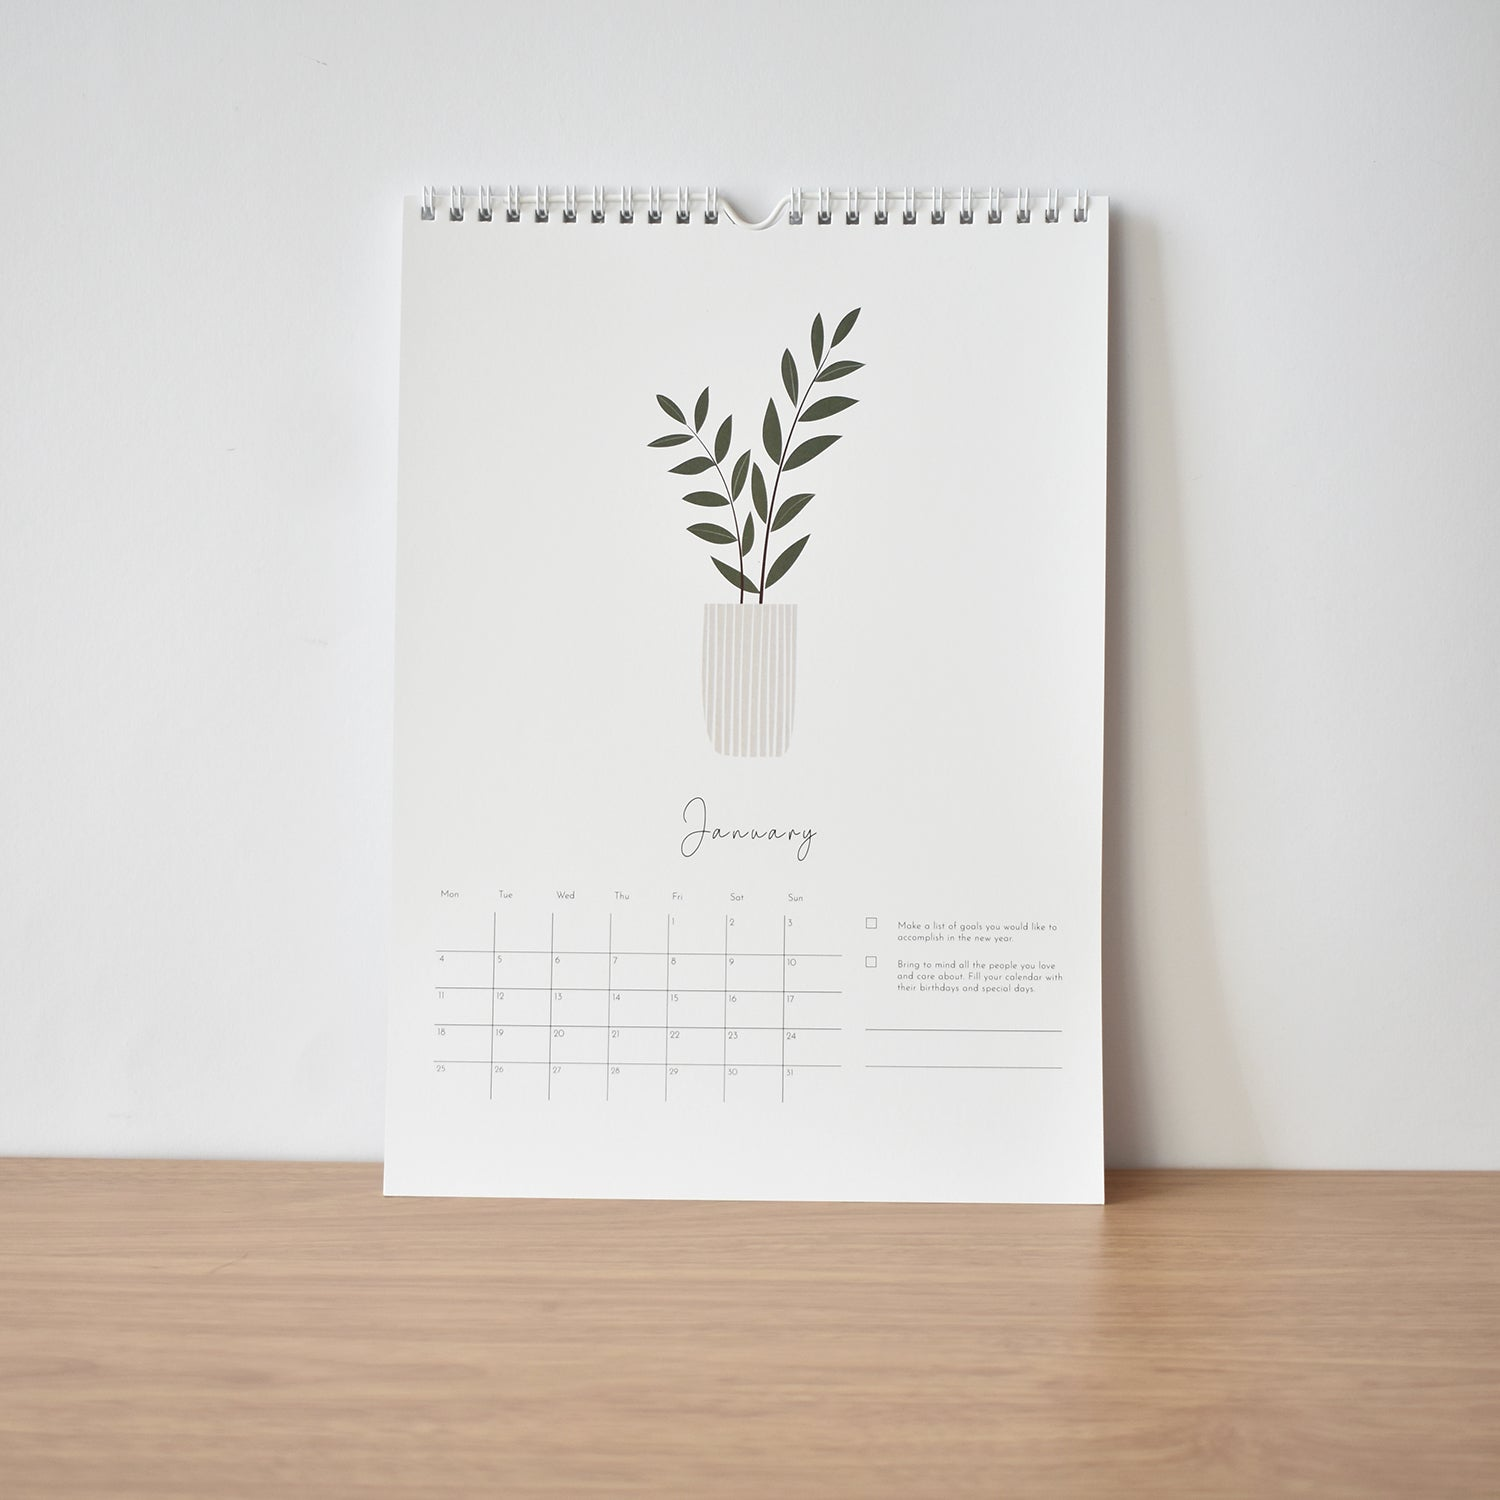 January Kindness & happiness calendar 2021 elemente design home plant